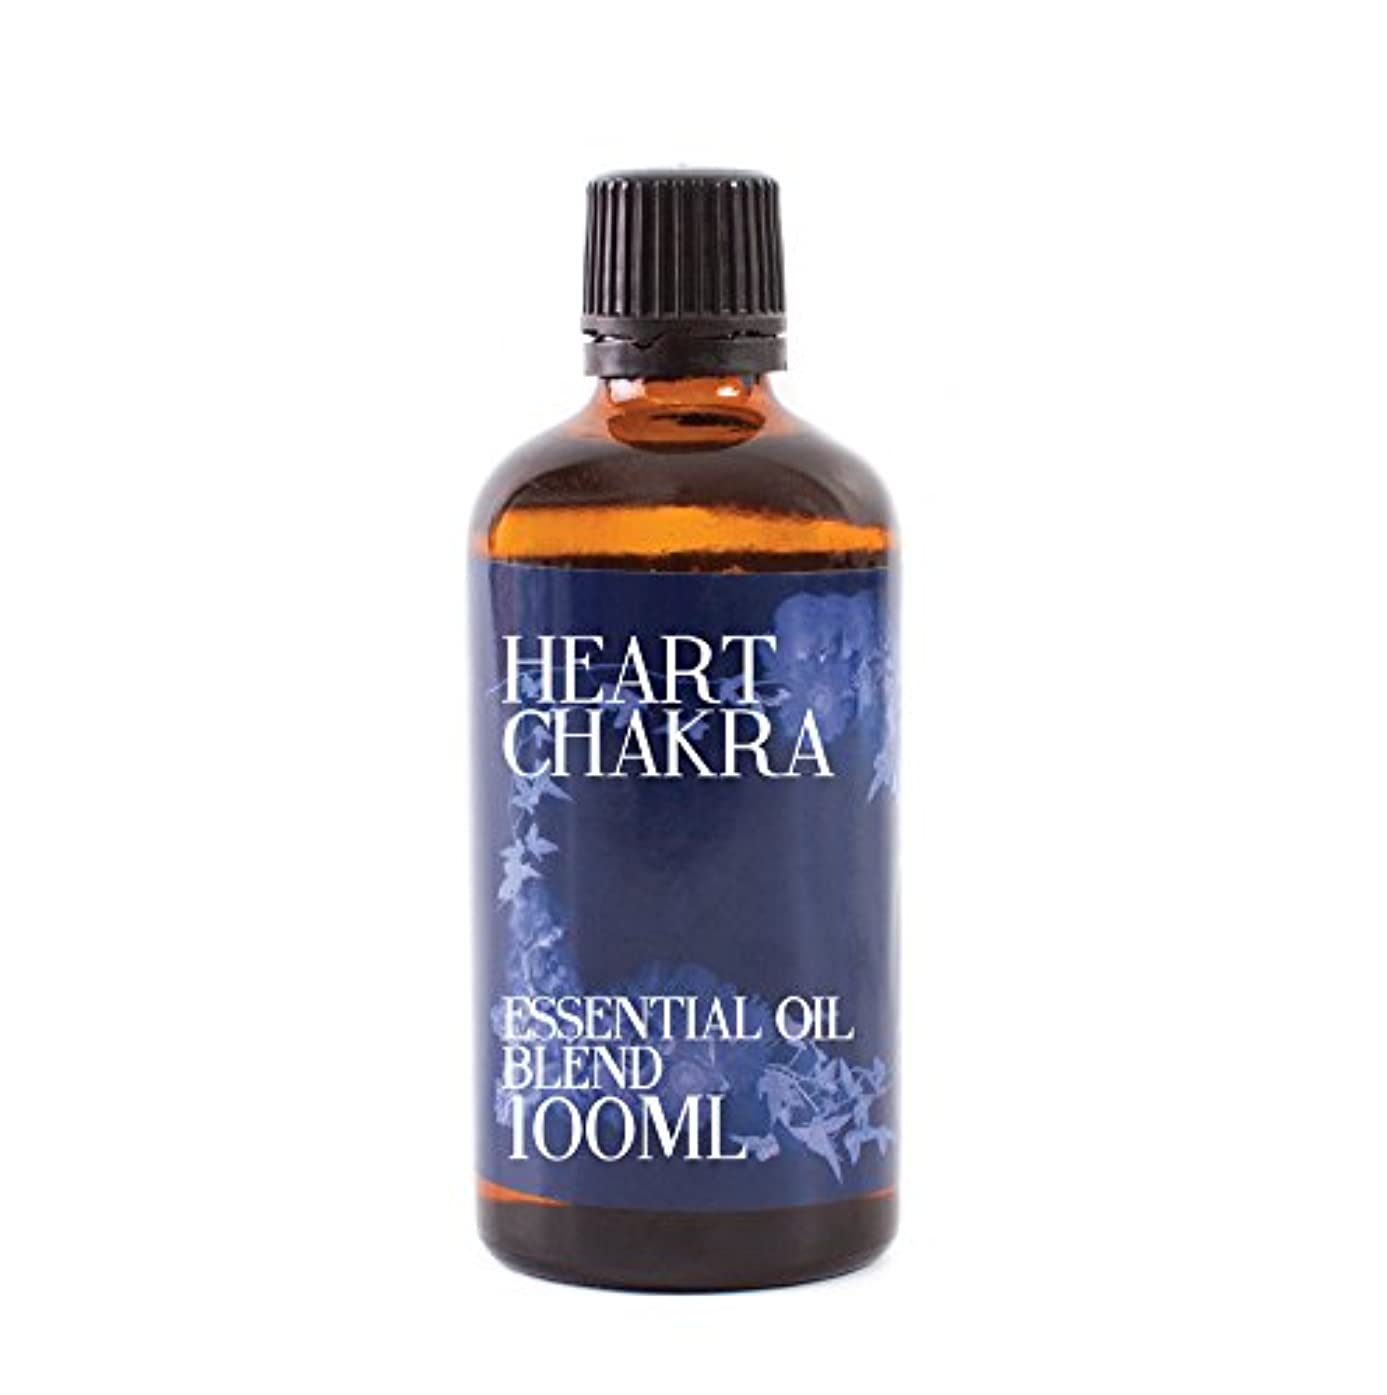 Mystic Moments | Heart Chakra | Essential Oil Blend - 100ml